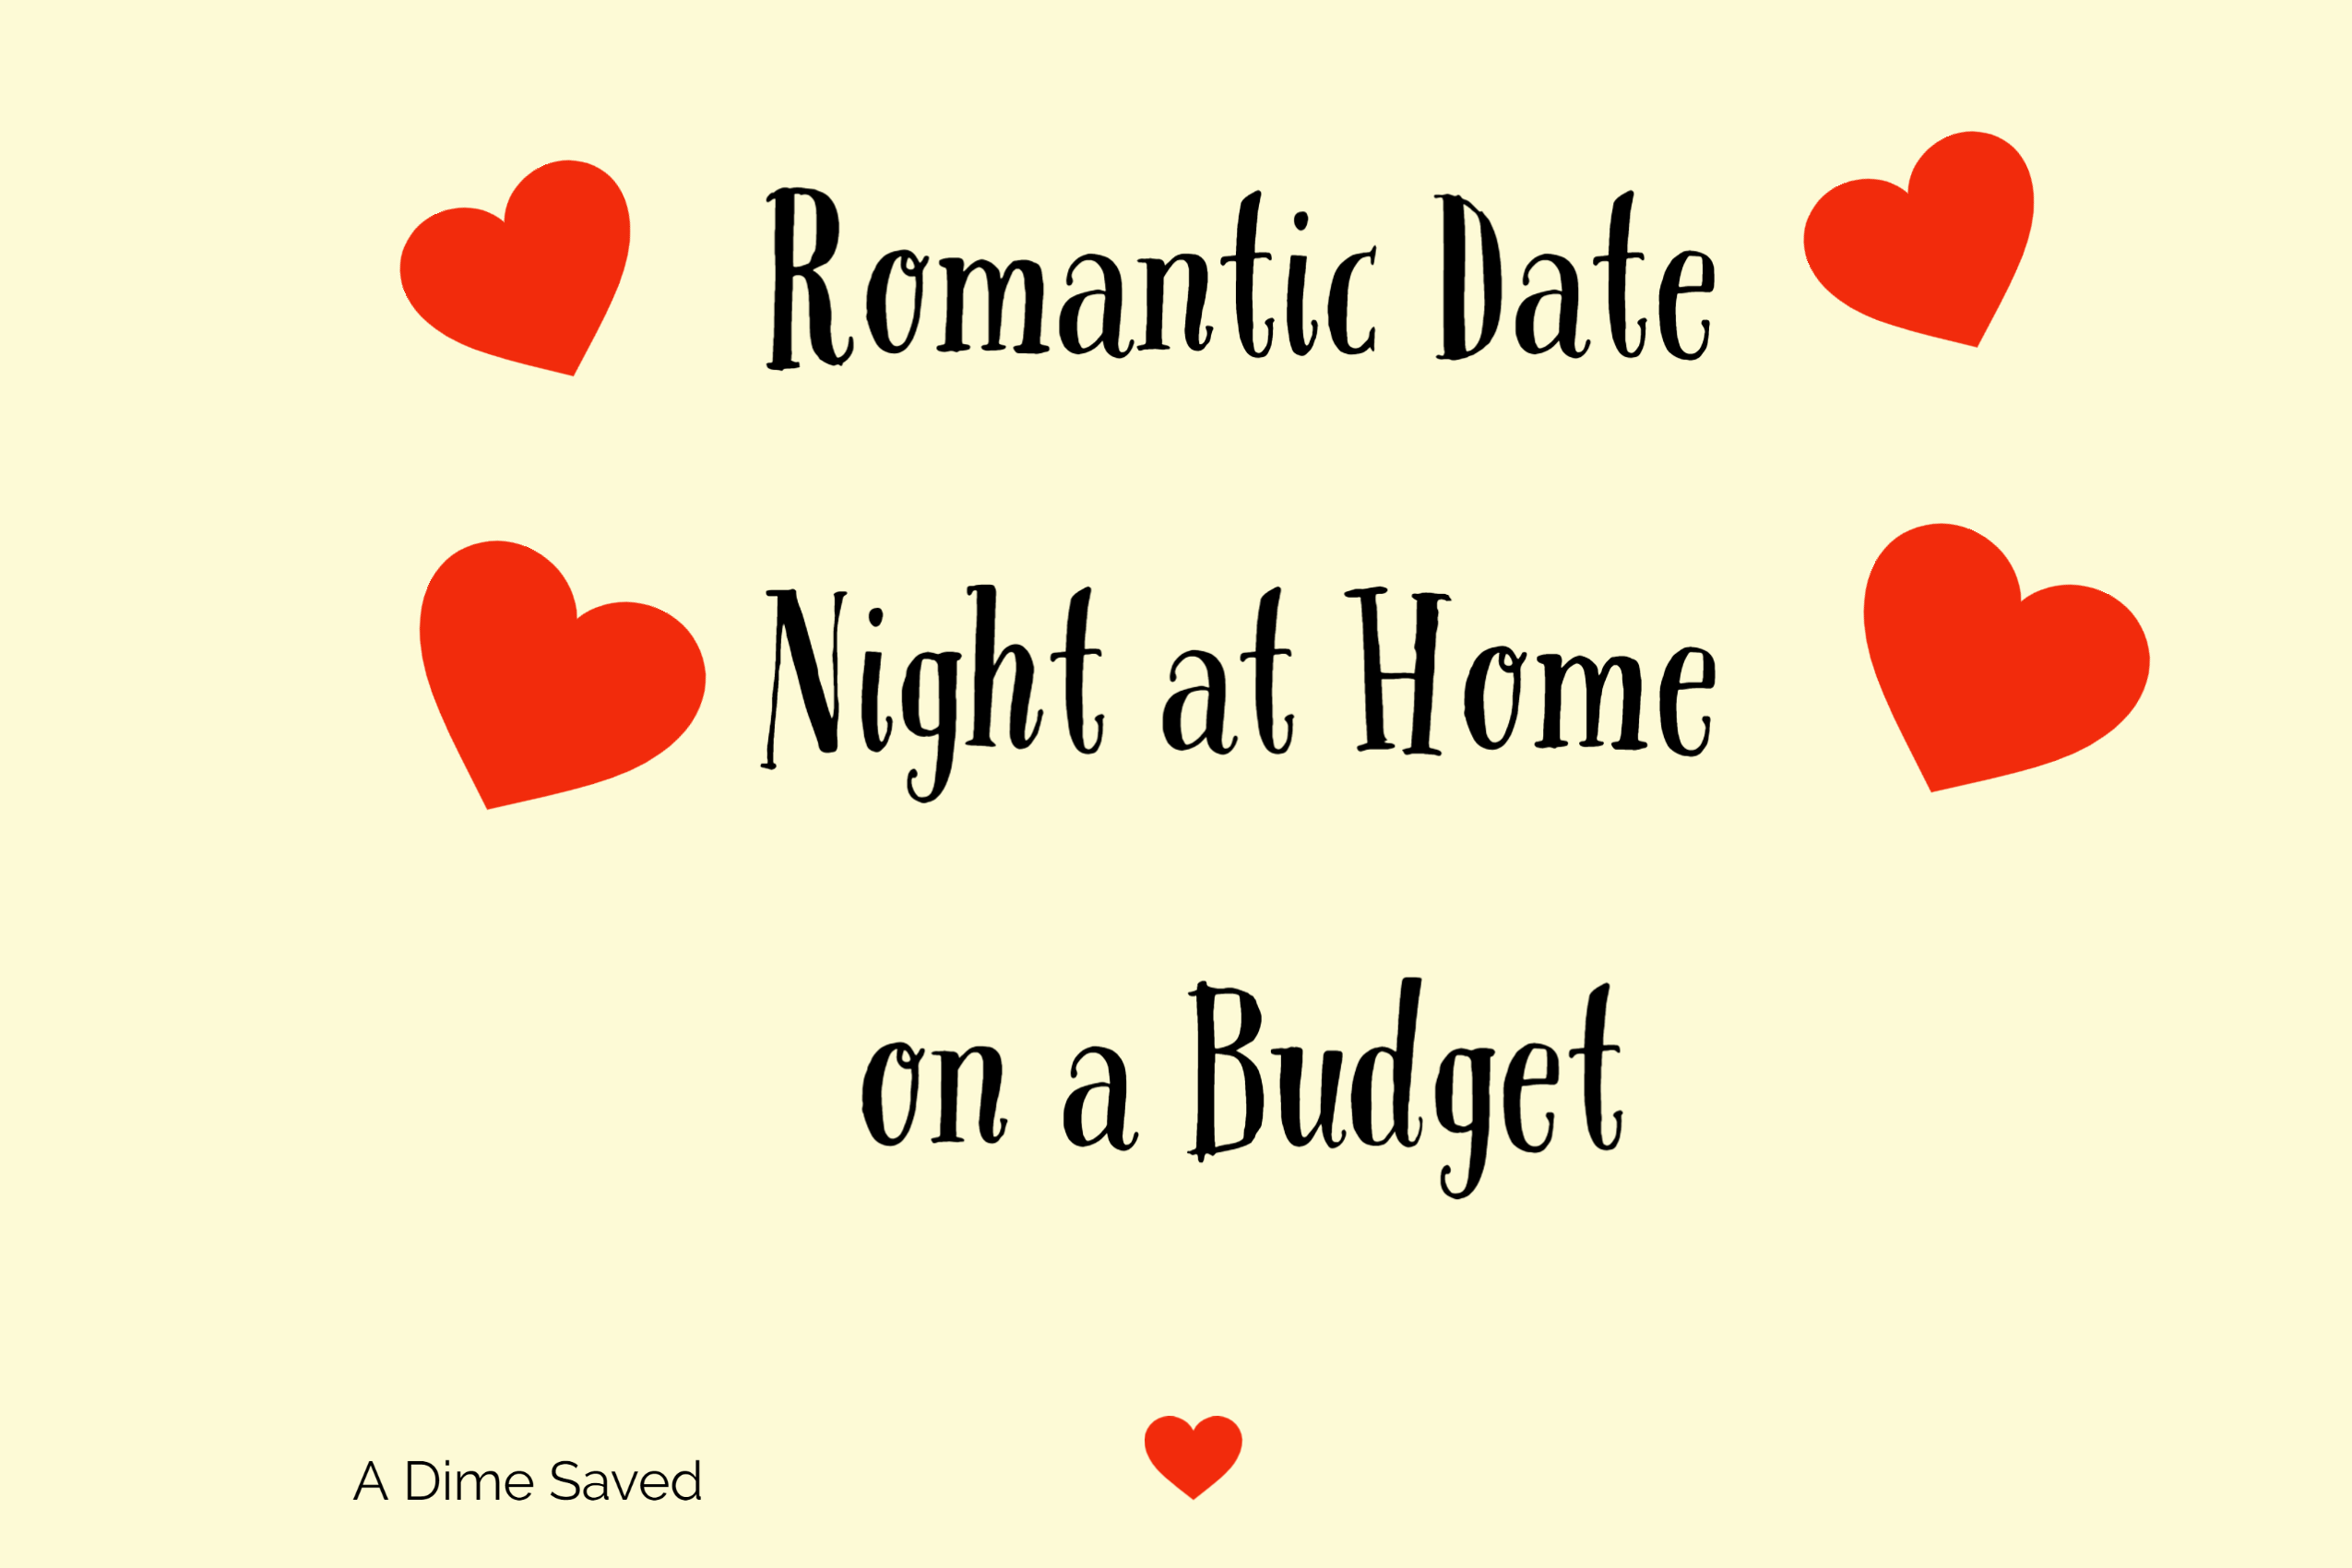 Romantic Date Night at Home on a Budget